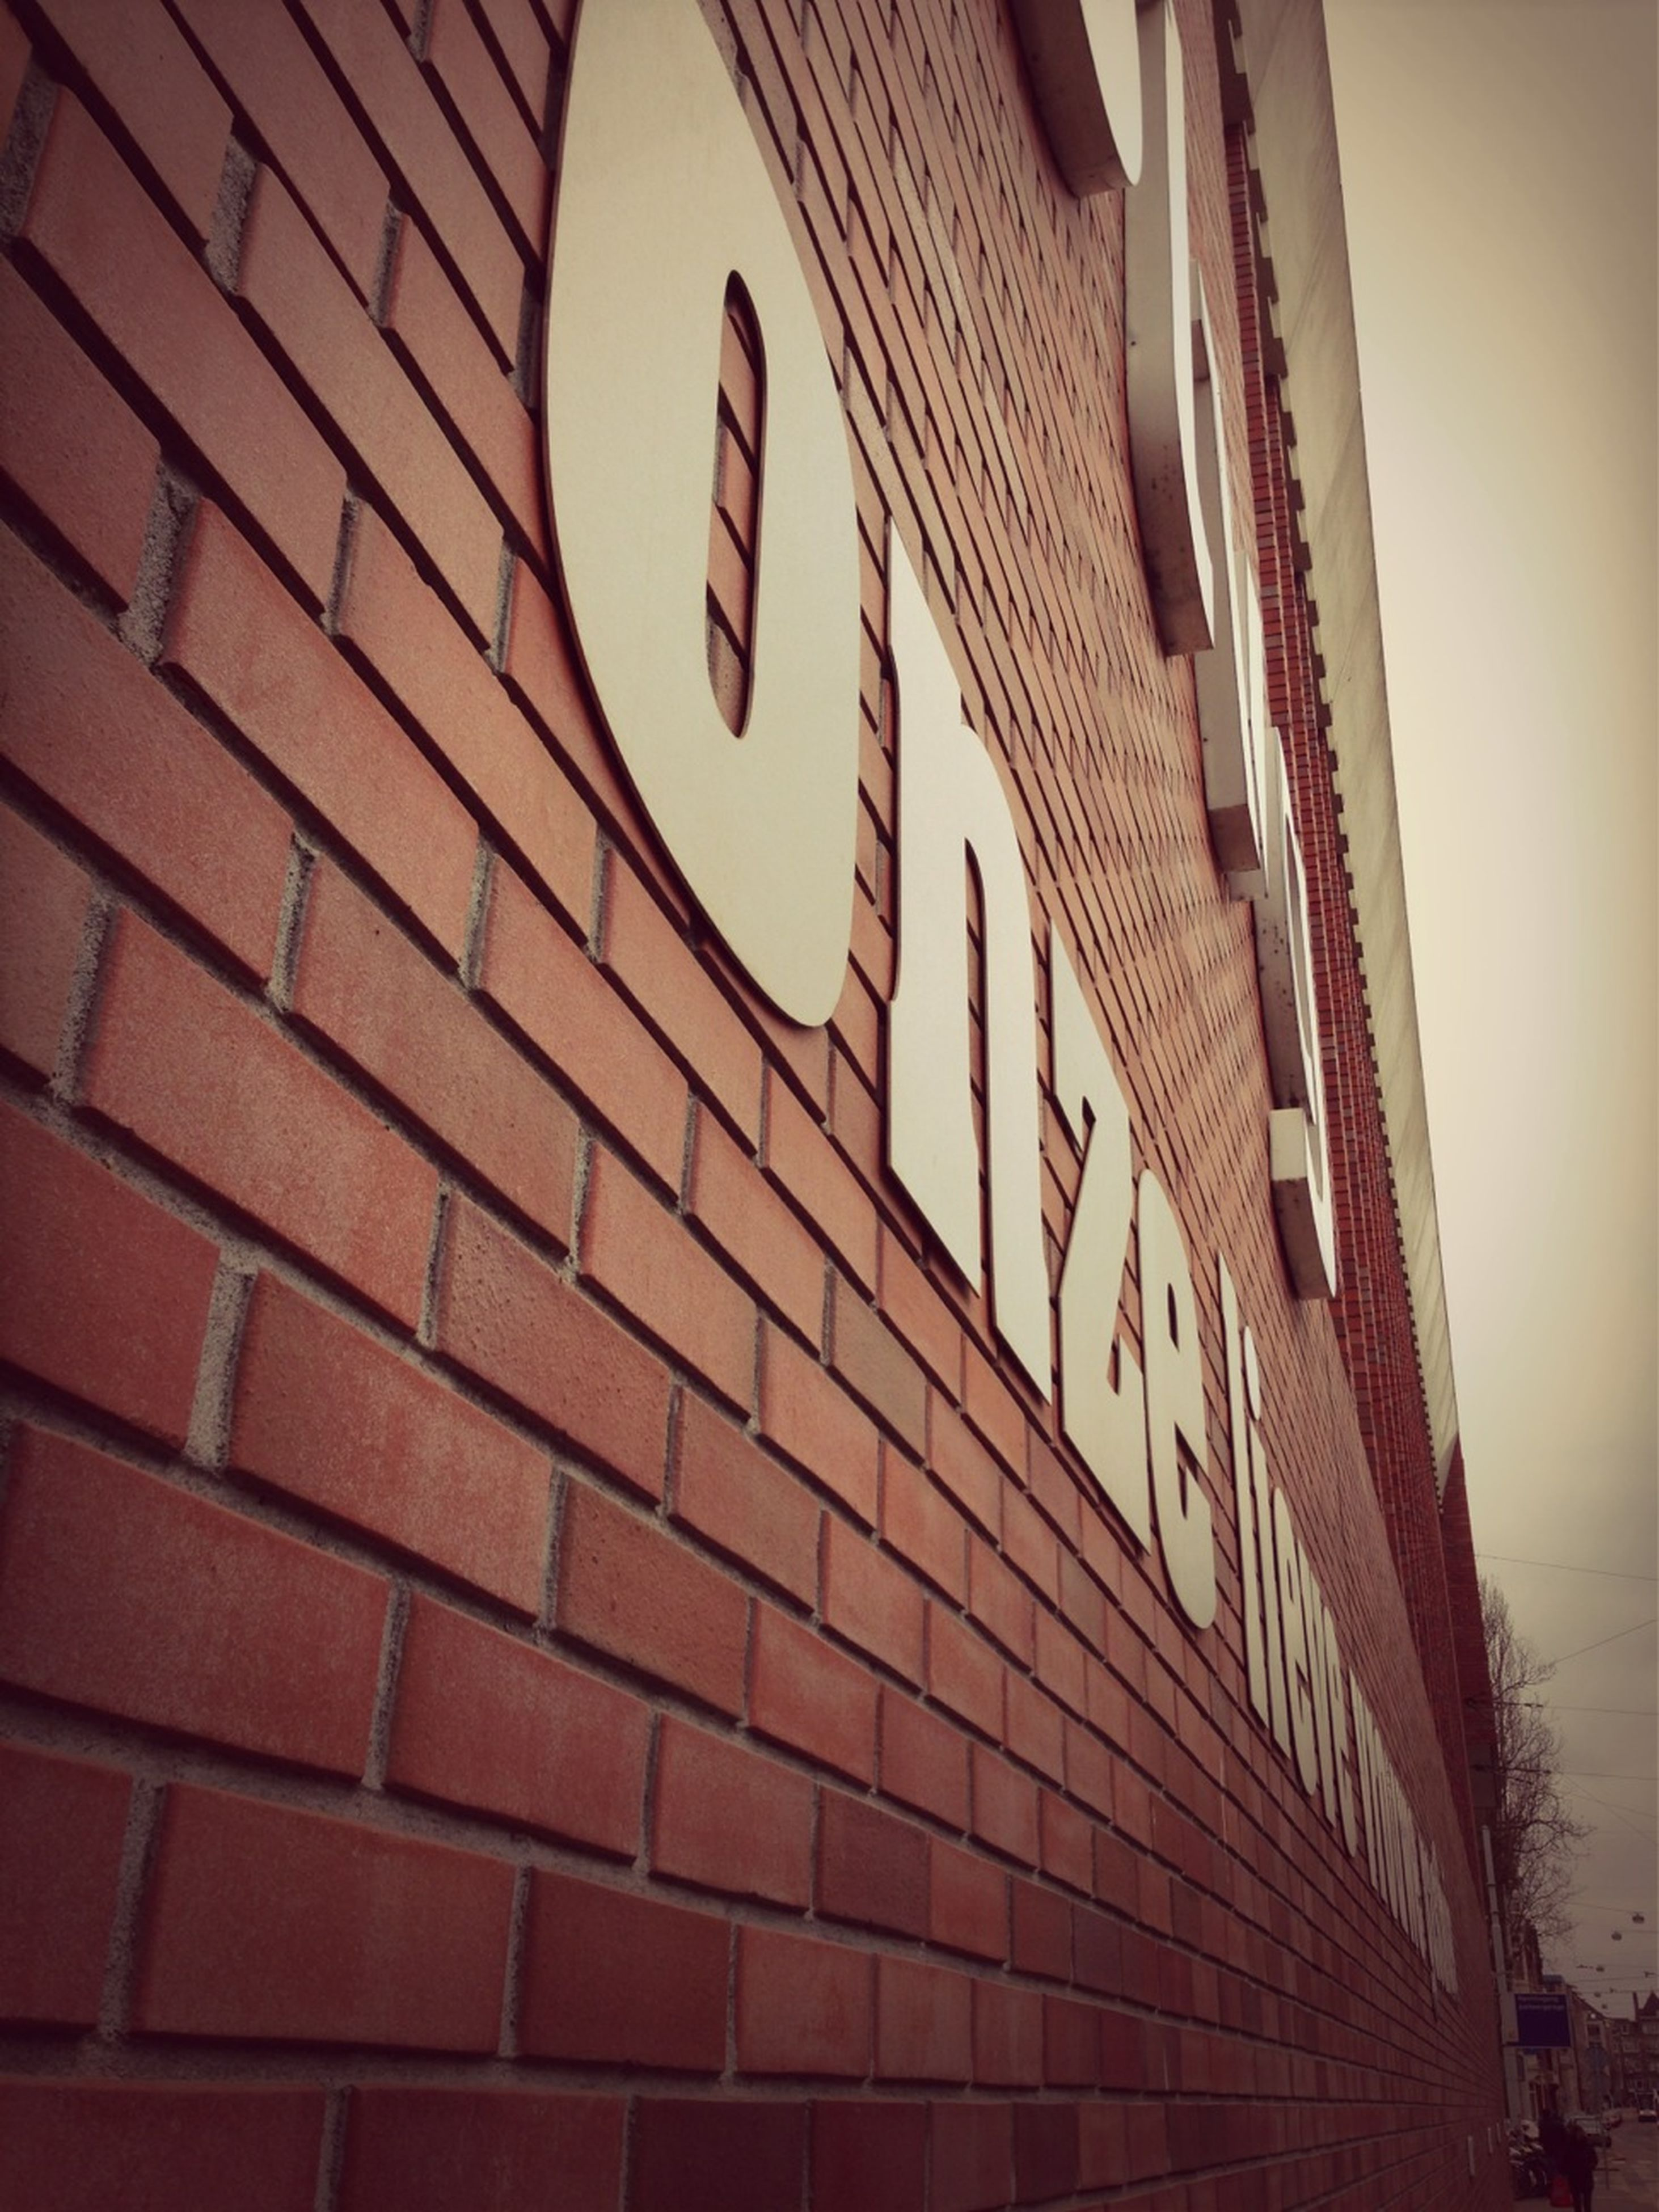 architecture, built structure, building exterior, low angle view, building, window, brick wall, city, no people, pattern, outdoors, day, residential building, sky, residential structure, modern, full frame, wall - building feature, repetition, text